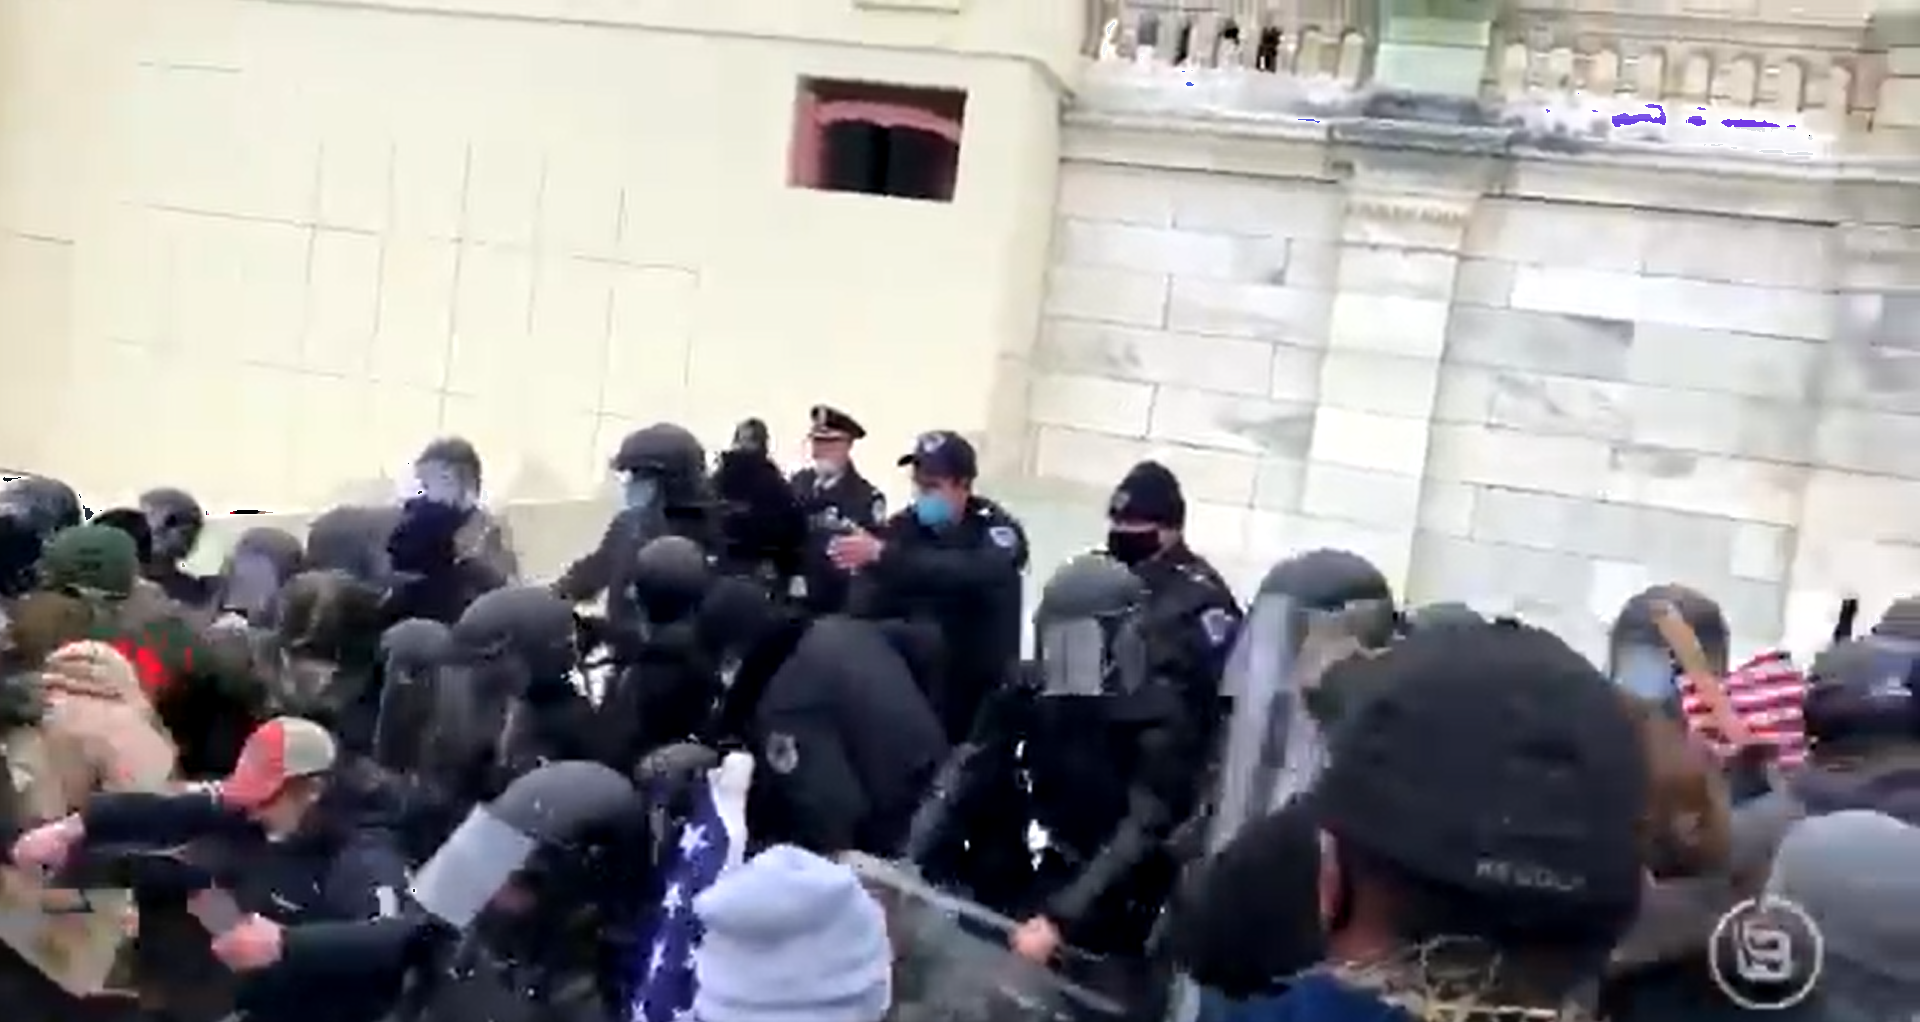 BREAKING: Trump supporters brawl with federal police at Capitol building